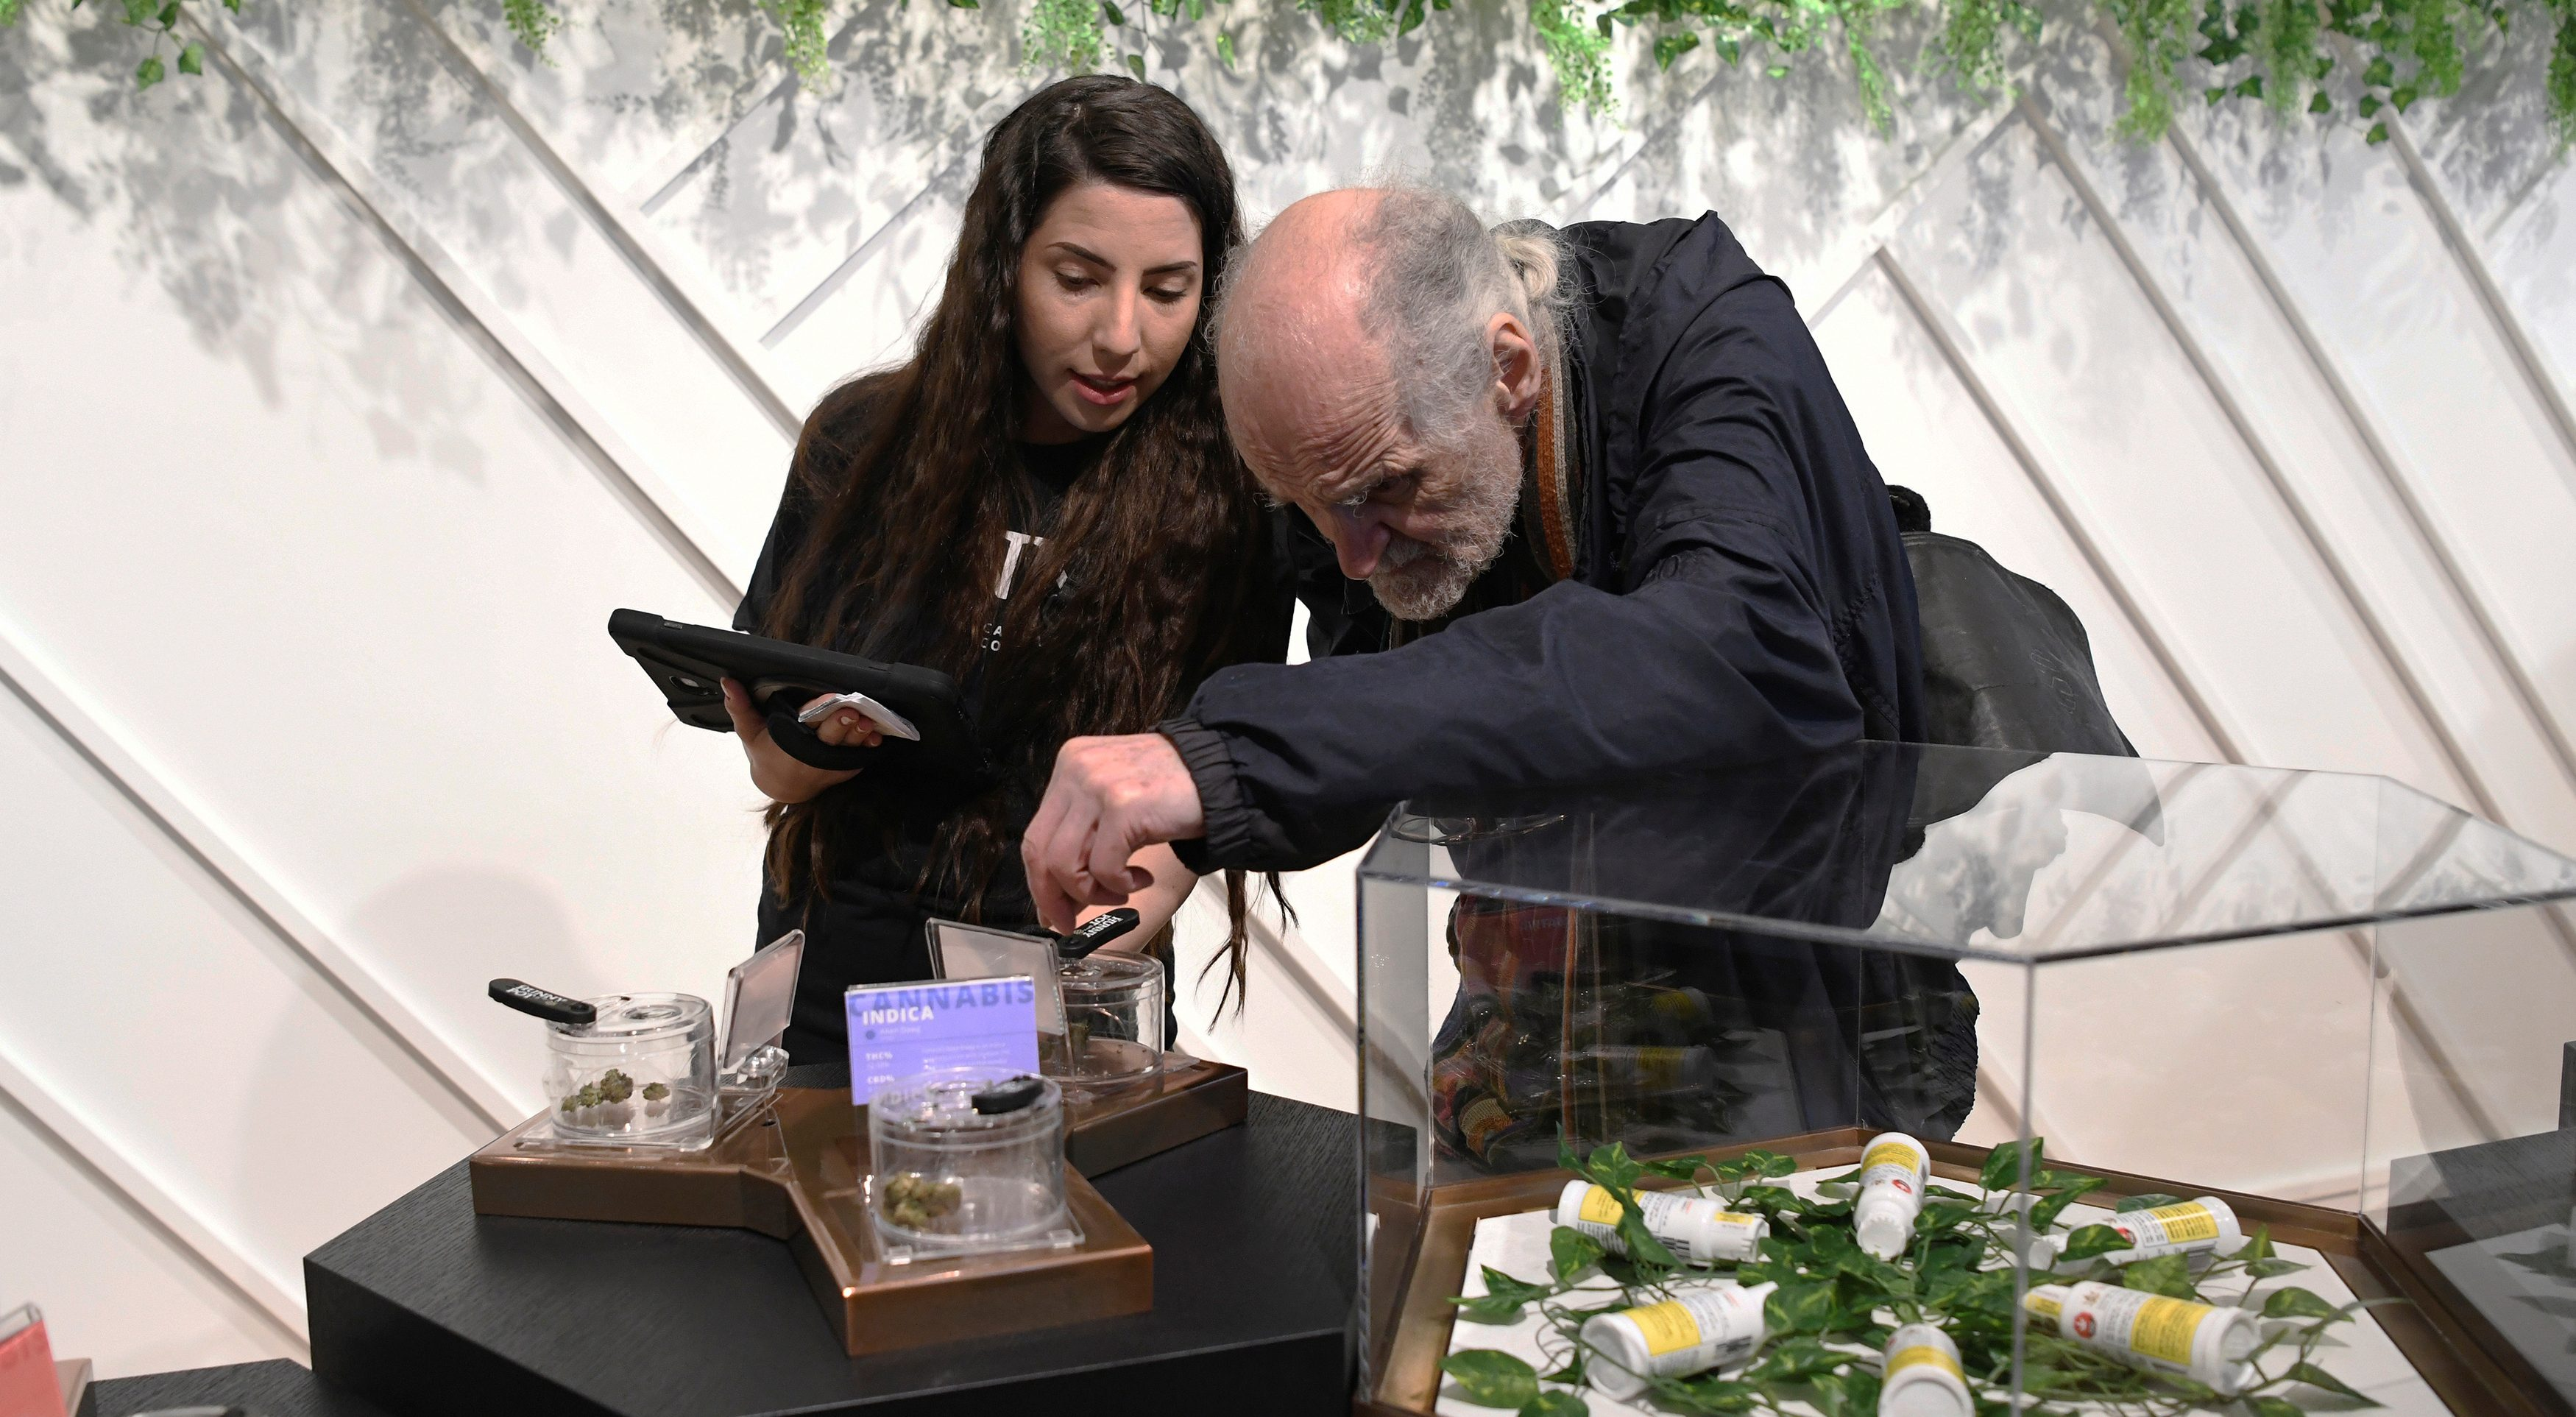 a customer and employee check out products at a cannabis dispensary